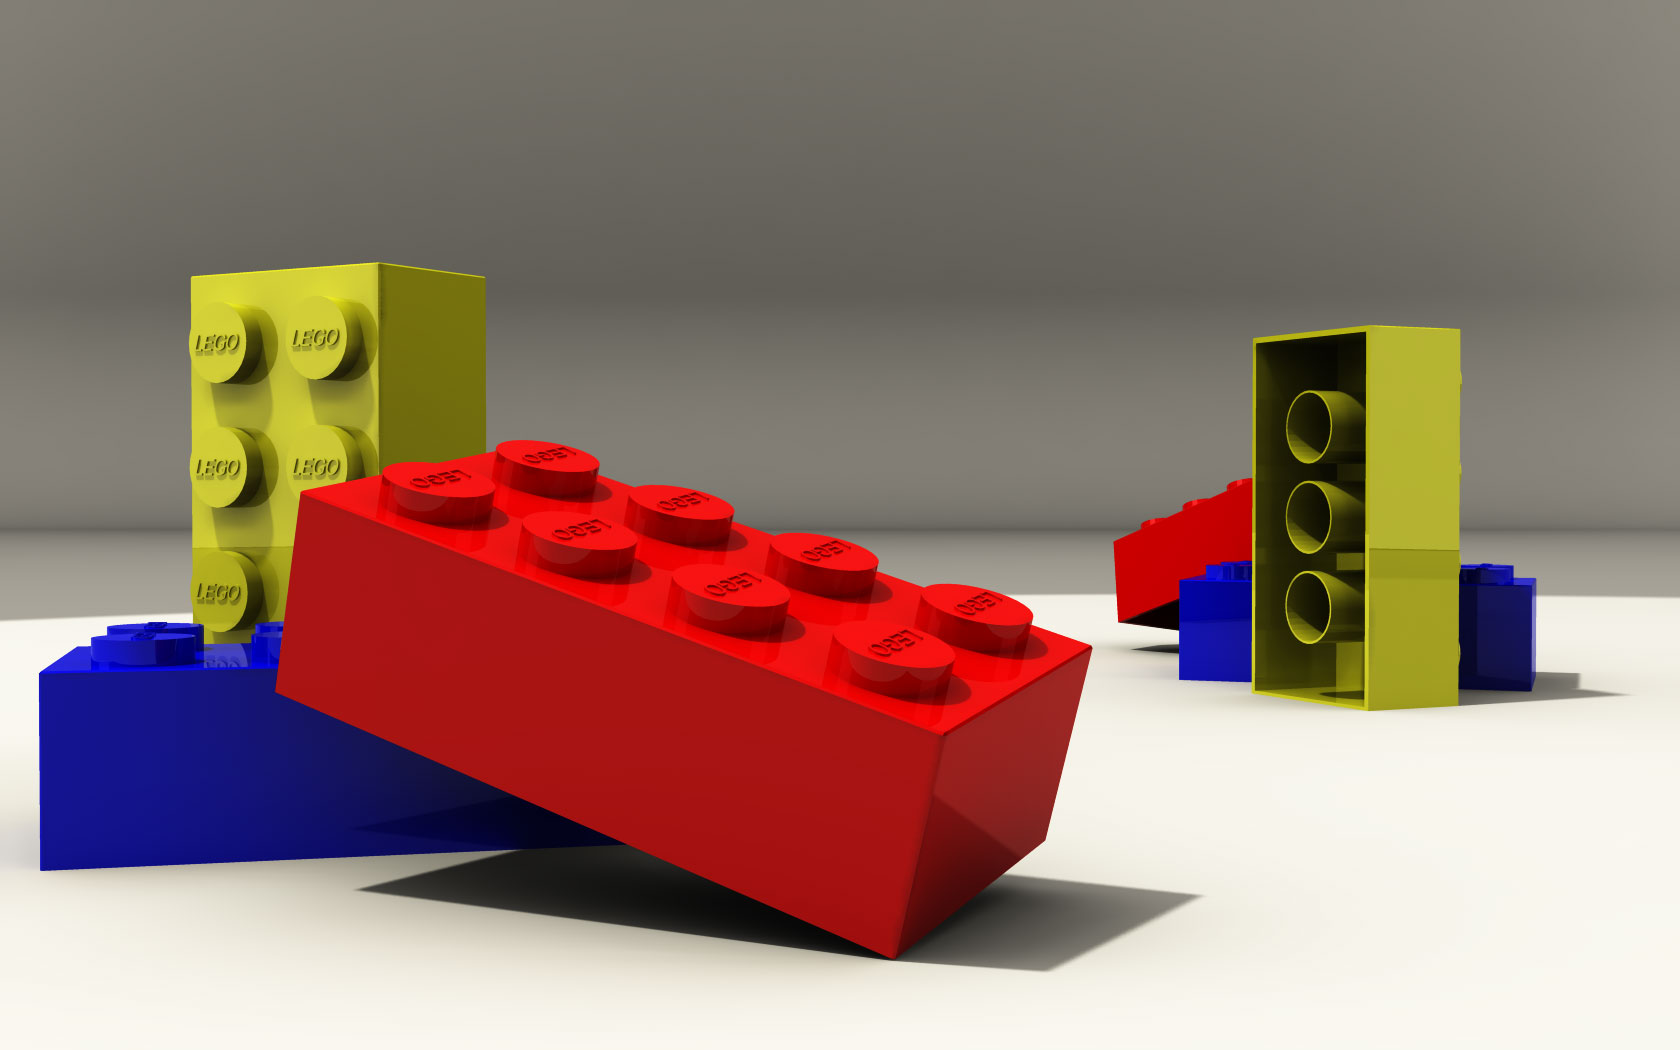 3D rendering of a blue, red and yellow unconnected Lego brick posed for a stylish semi-realistic image